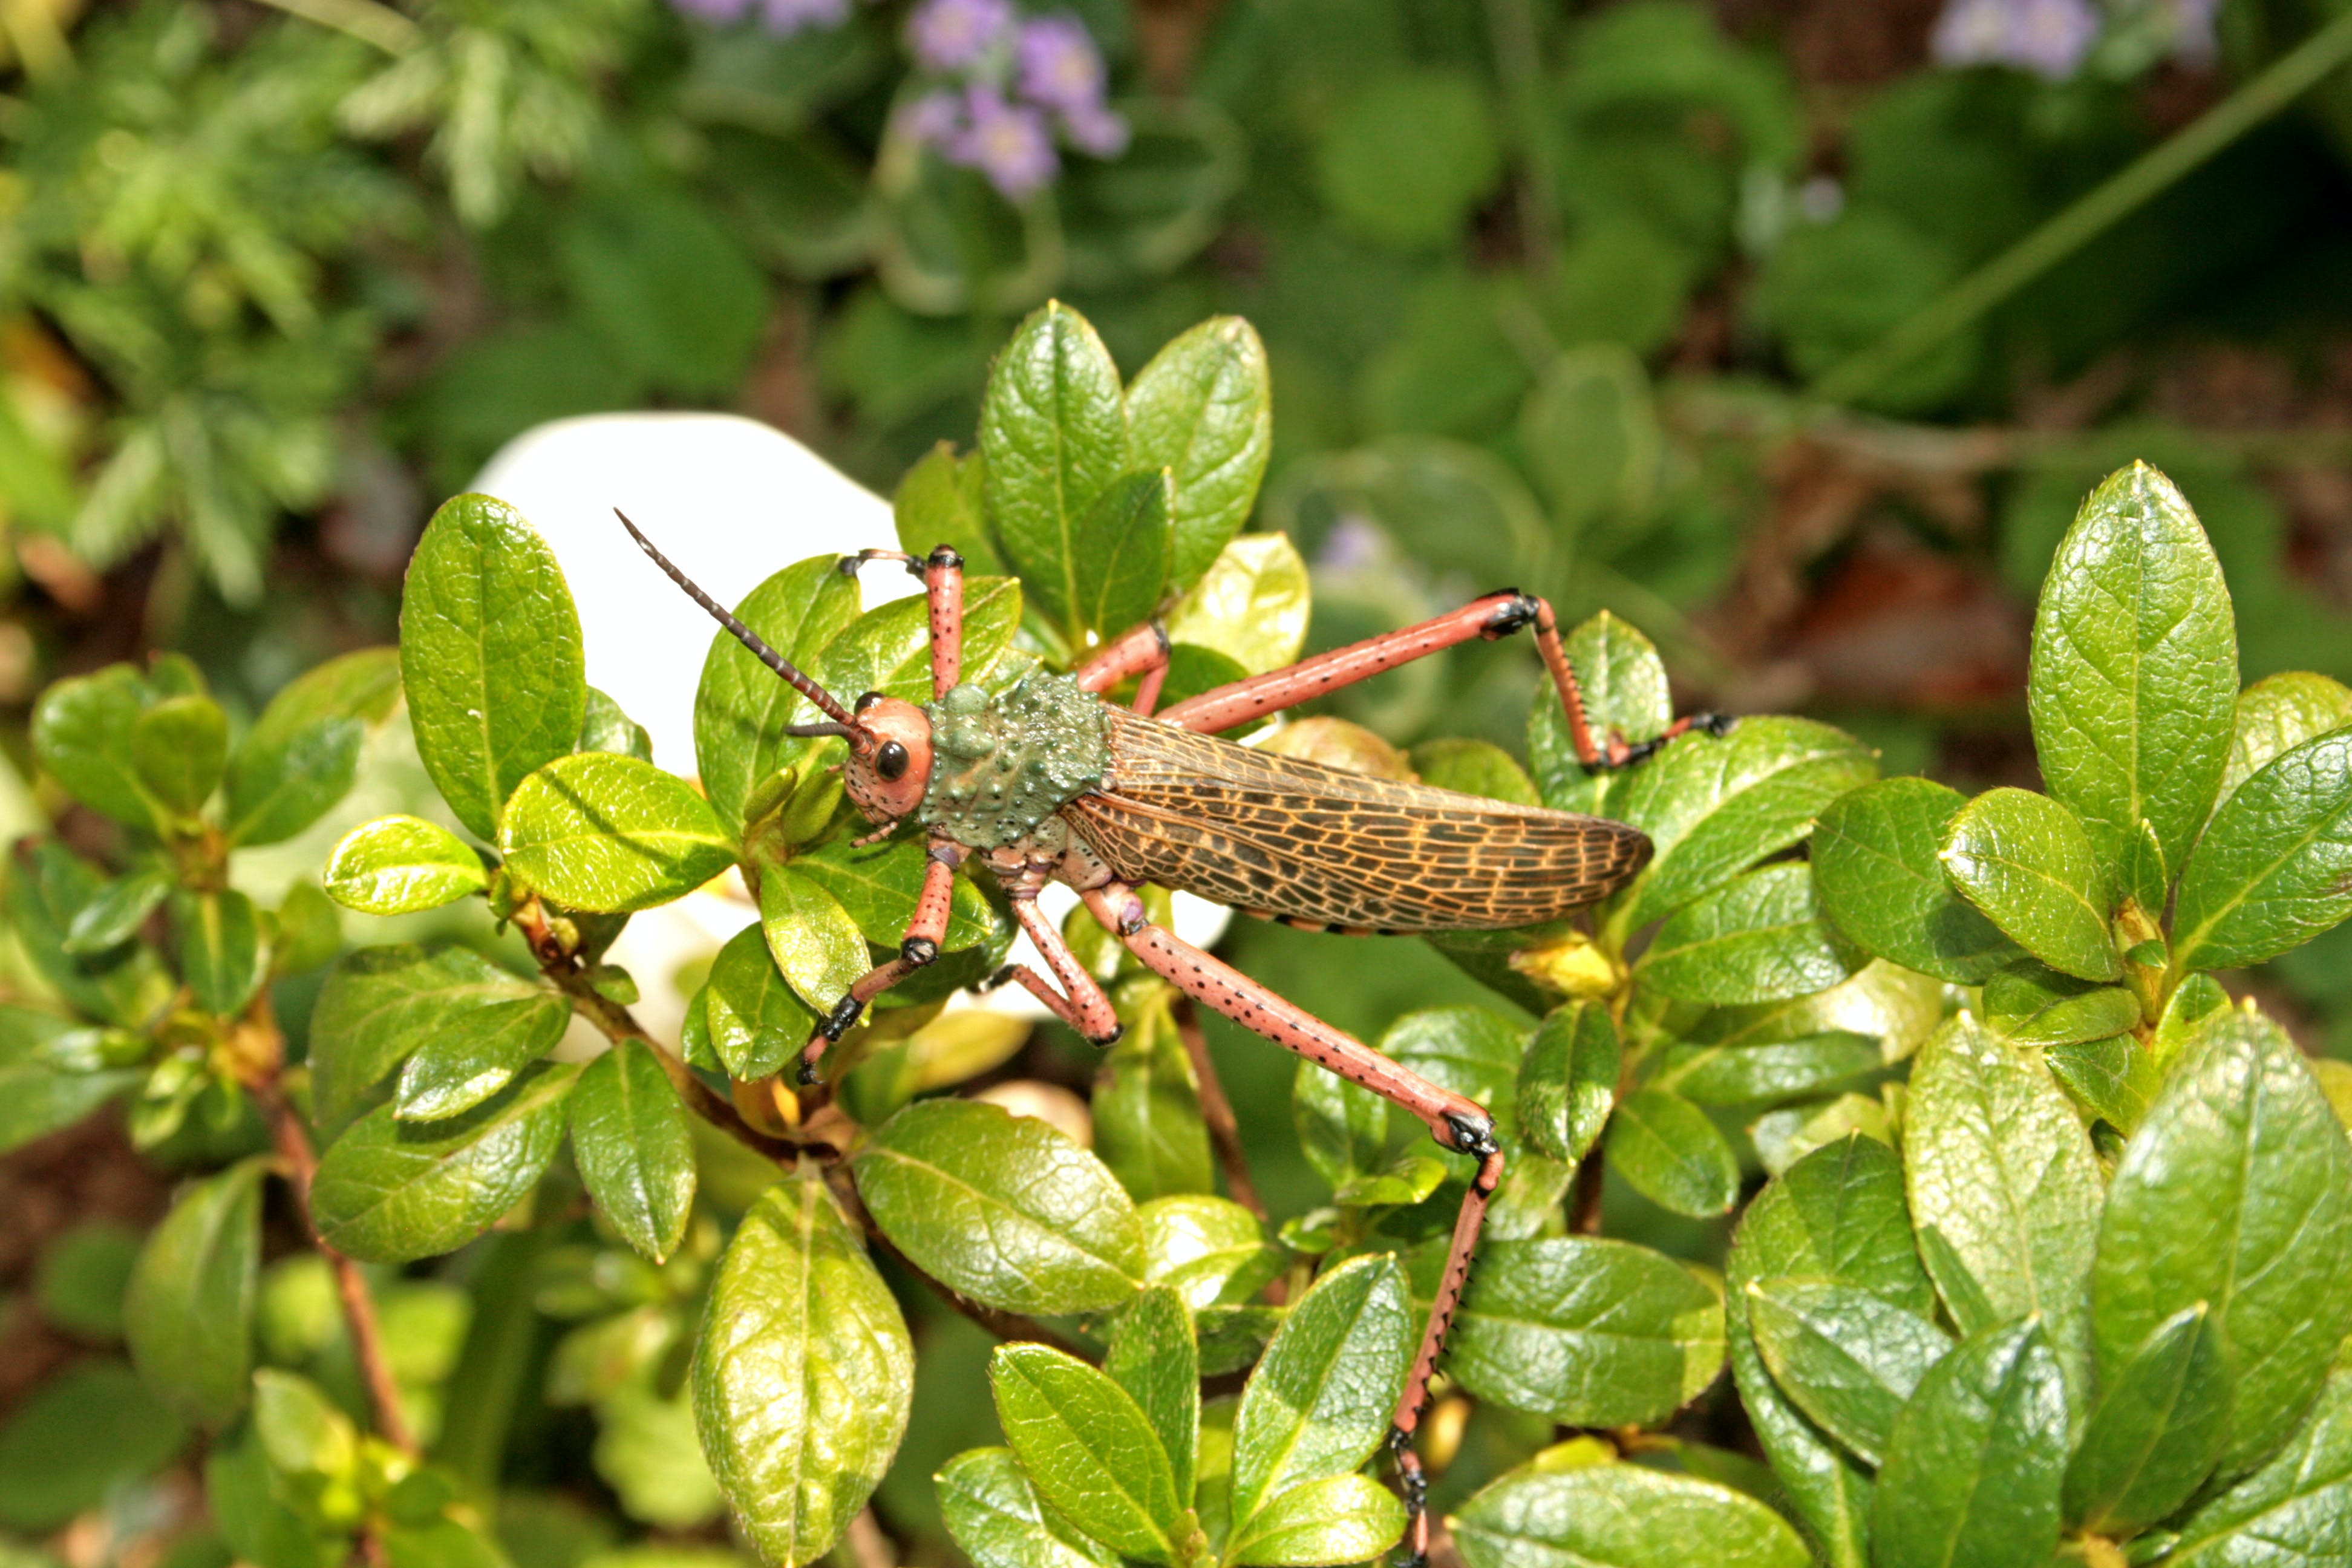 Free stock photo of nature, leaves, insect, grasshopper